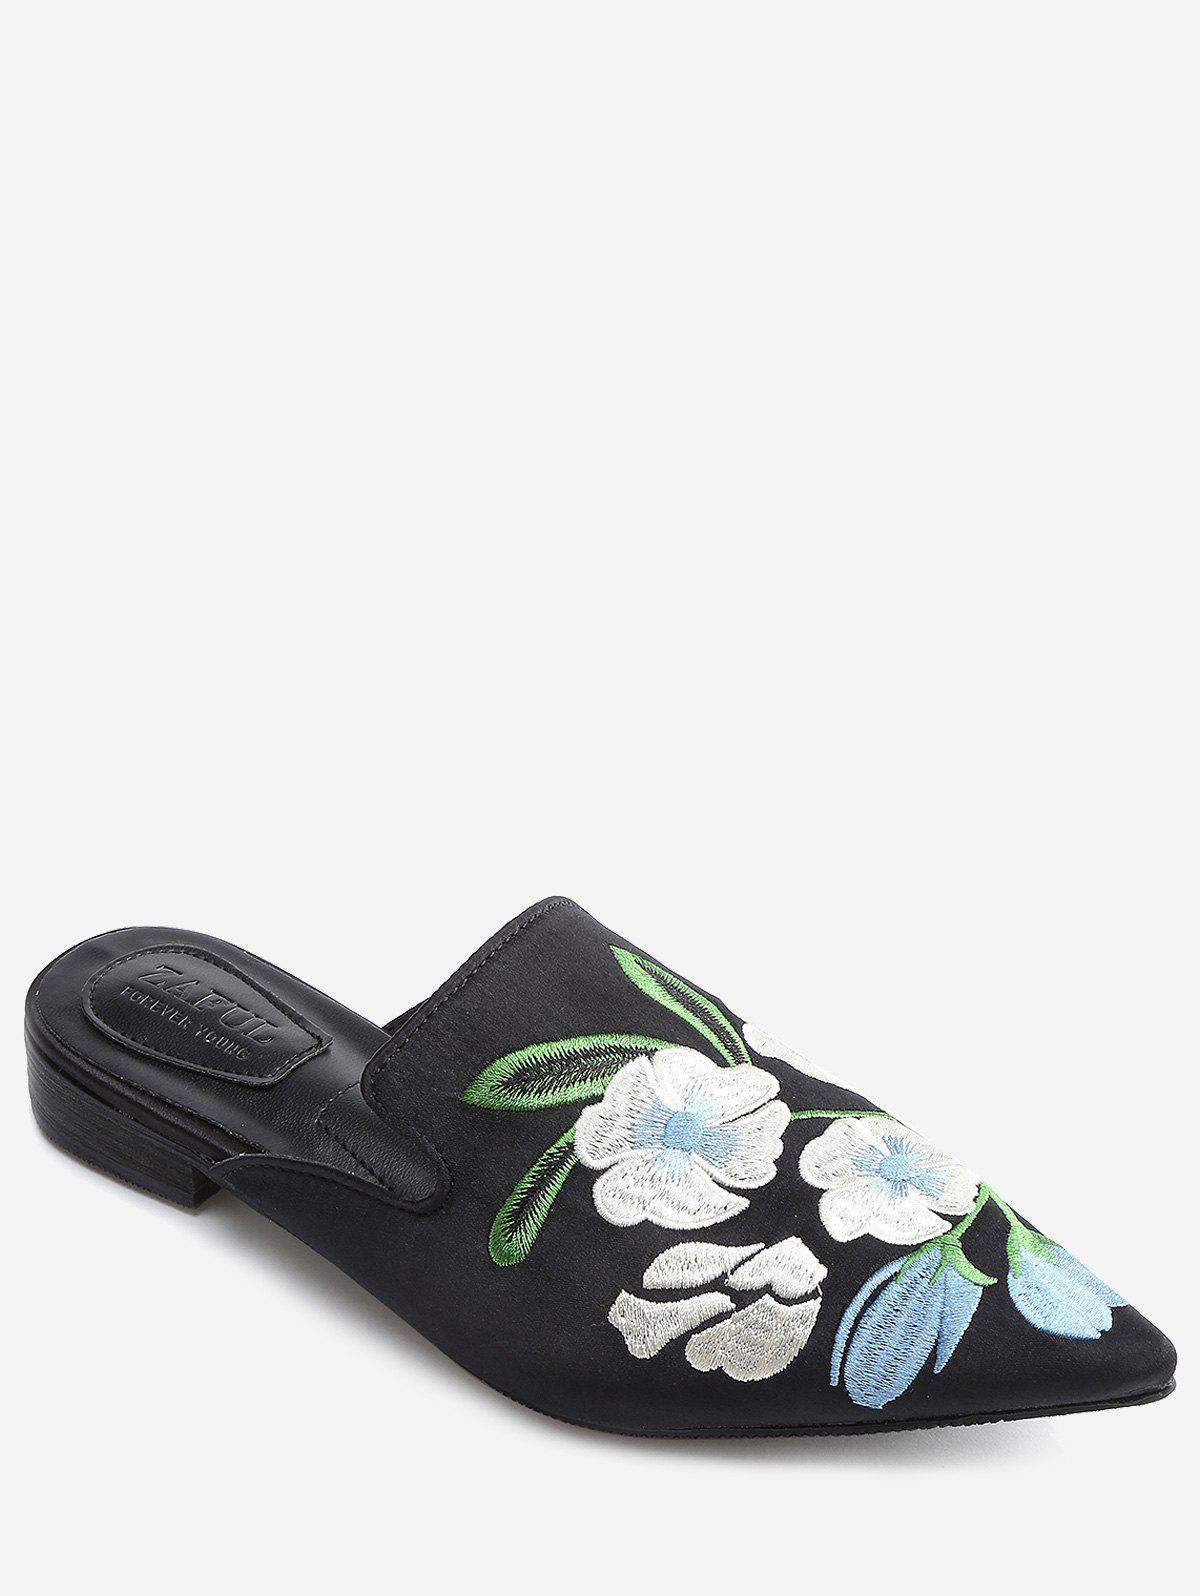 Affordable Pointed Toe Flower Embroidery Mules Shoes